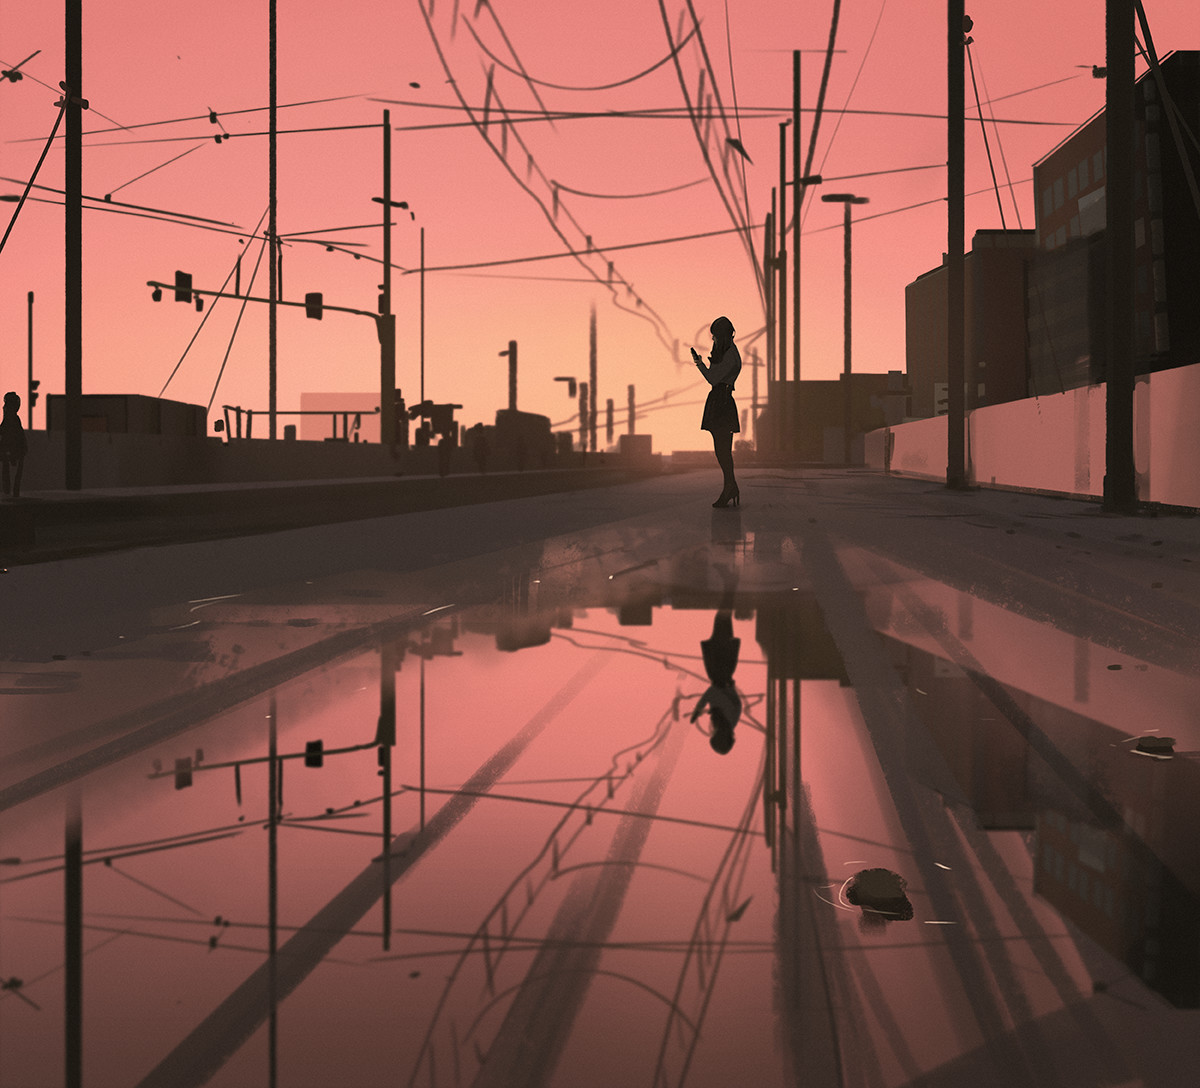 Sketch collection 6 2018 After the rain, Atey Ghailan_01